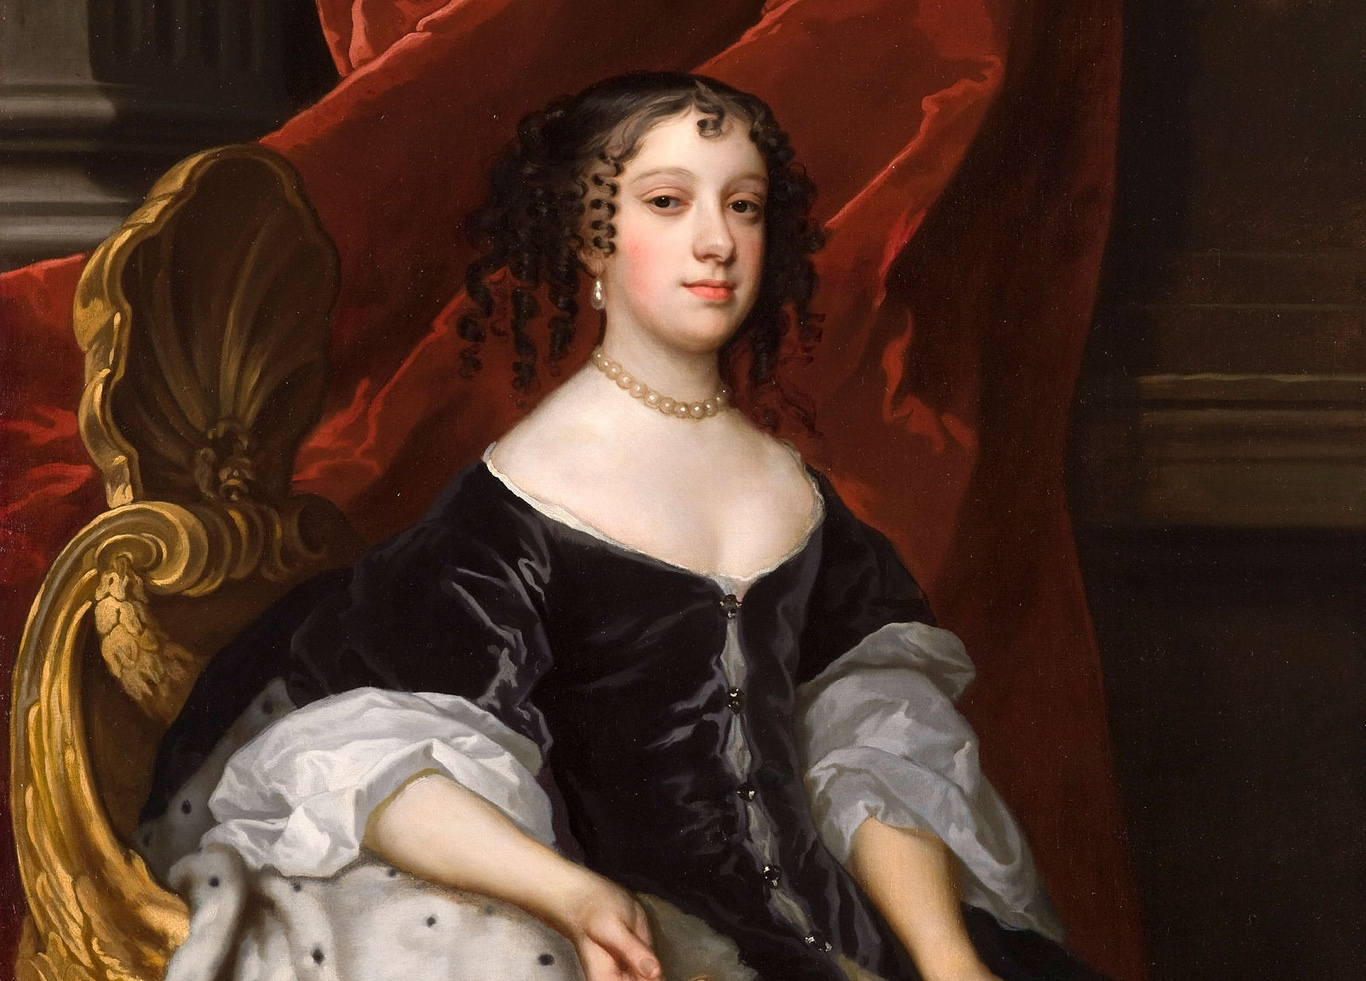 Season 3 Episode 42: Susan Abernethy on Catherine of Braganza, Queen of England and Regent of Portugal